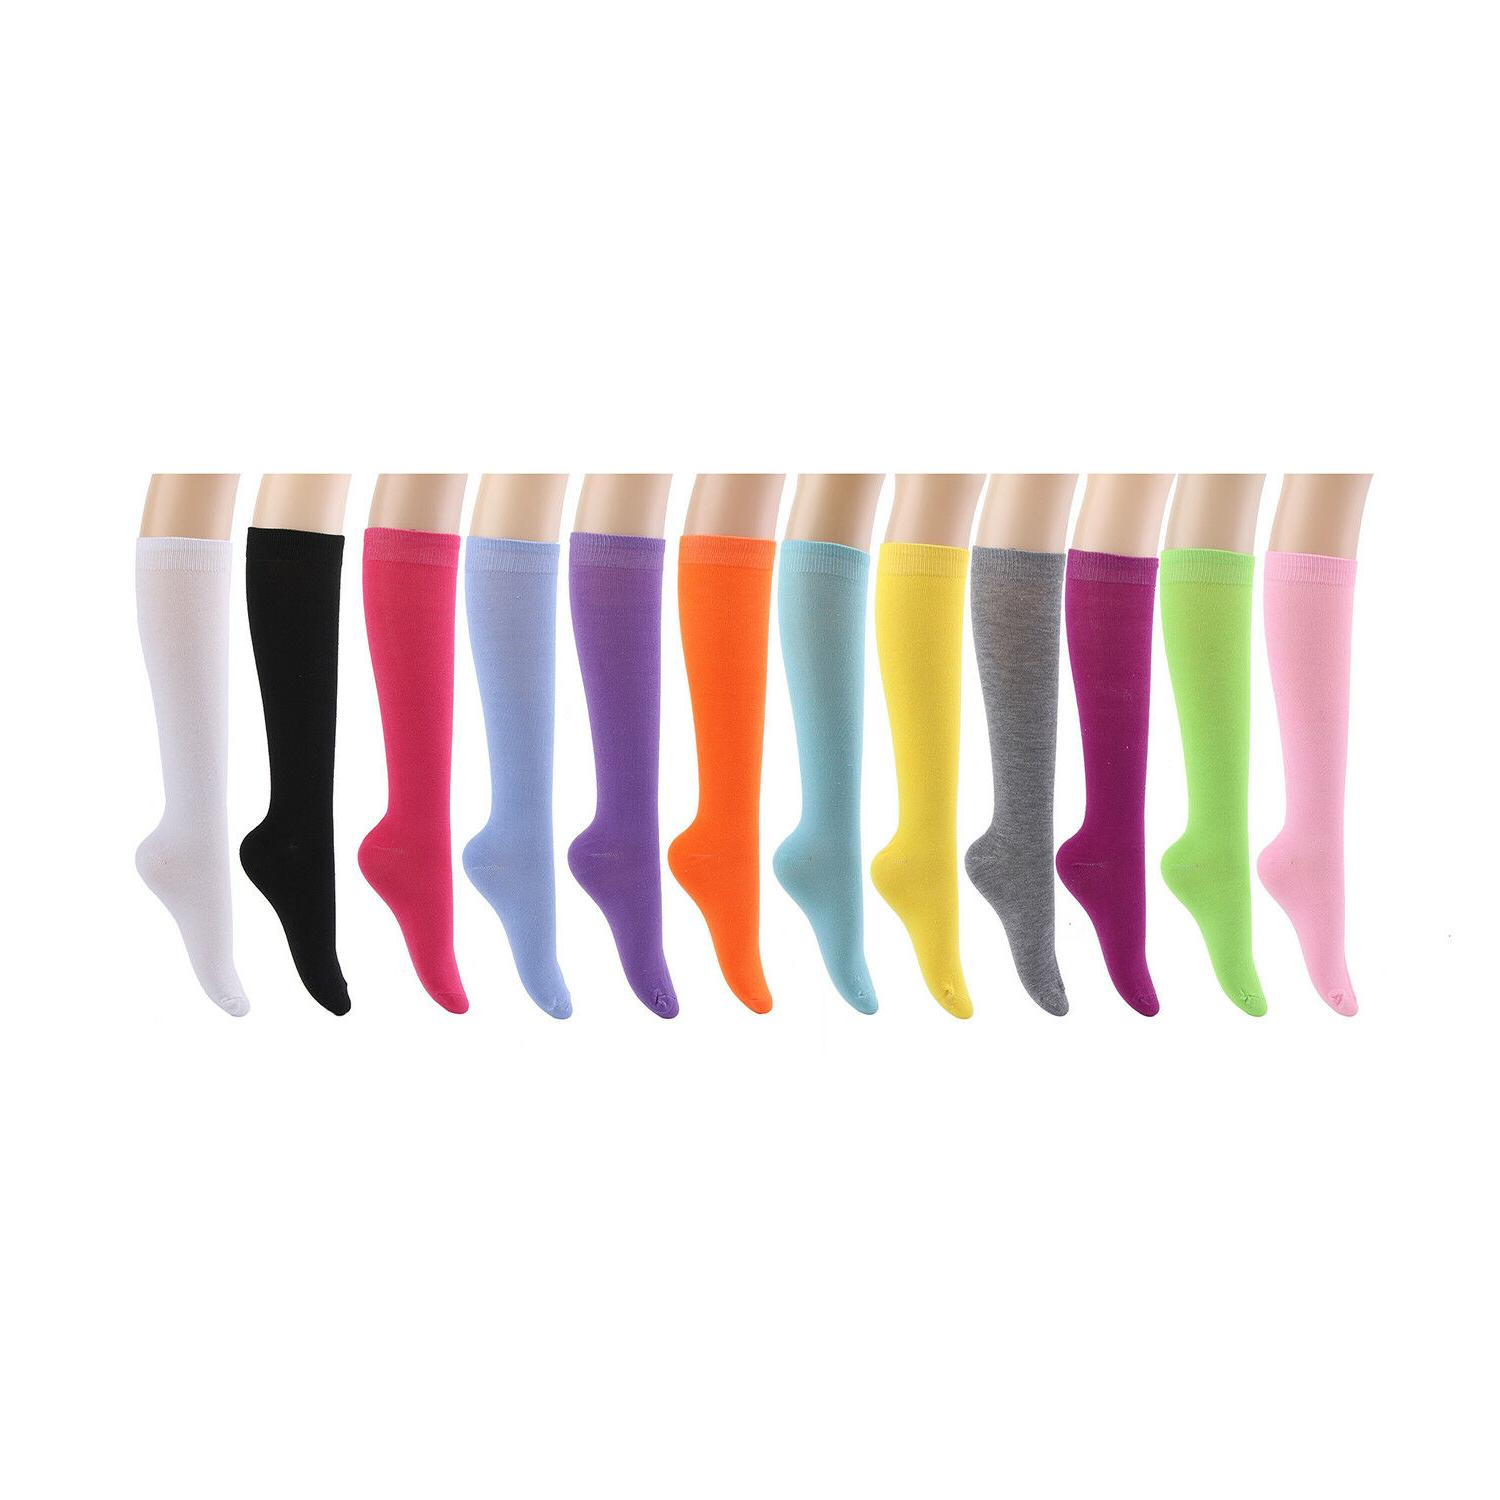 Knee High Socks Women lady Girl Uniform School 12 Pairs Size